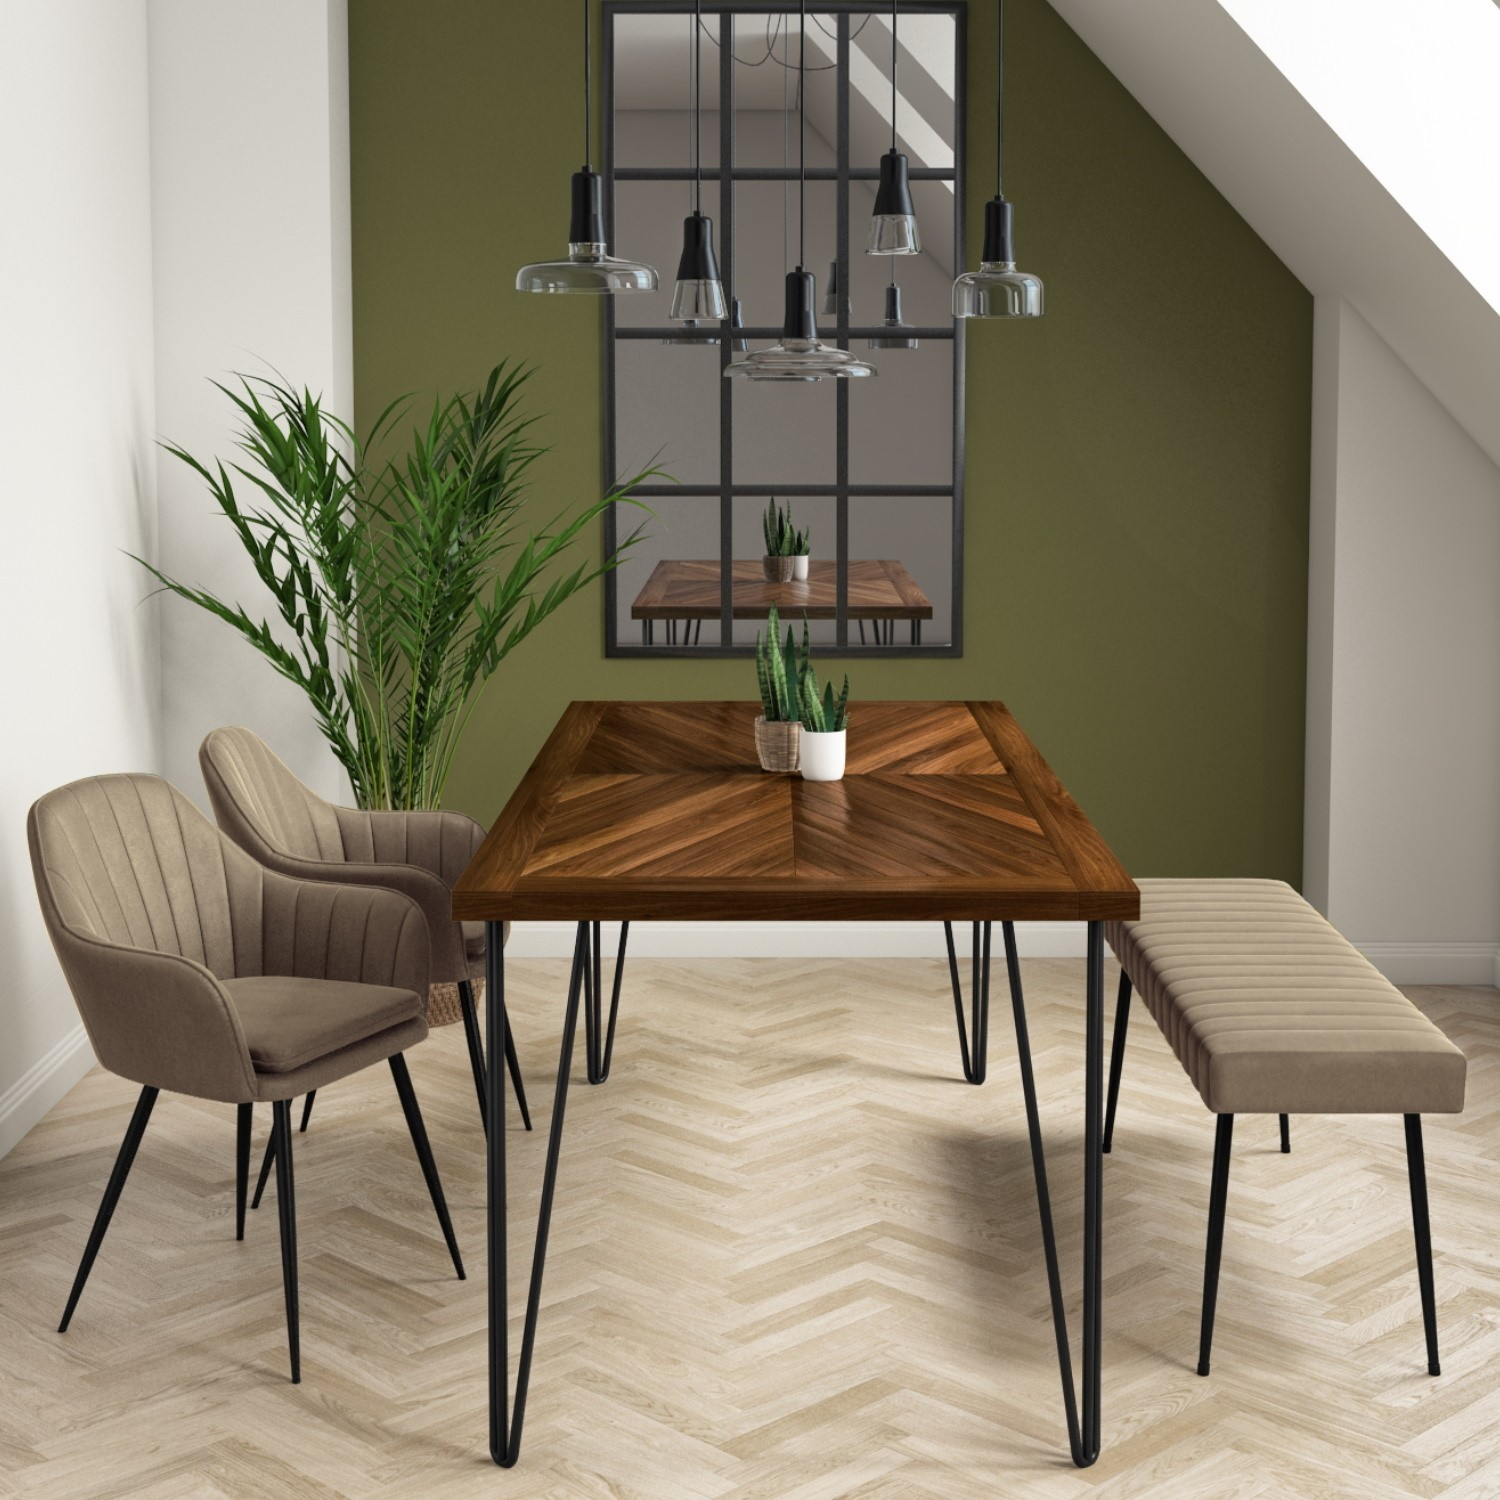 Drew Dark Wood Dining Table with 9 Dining Chairs & 9 Bench in Beige Faux  Leather